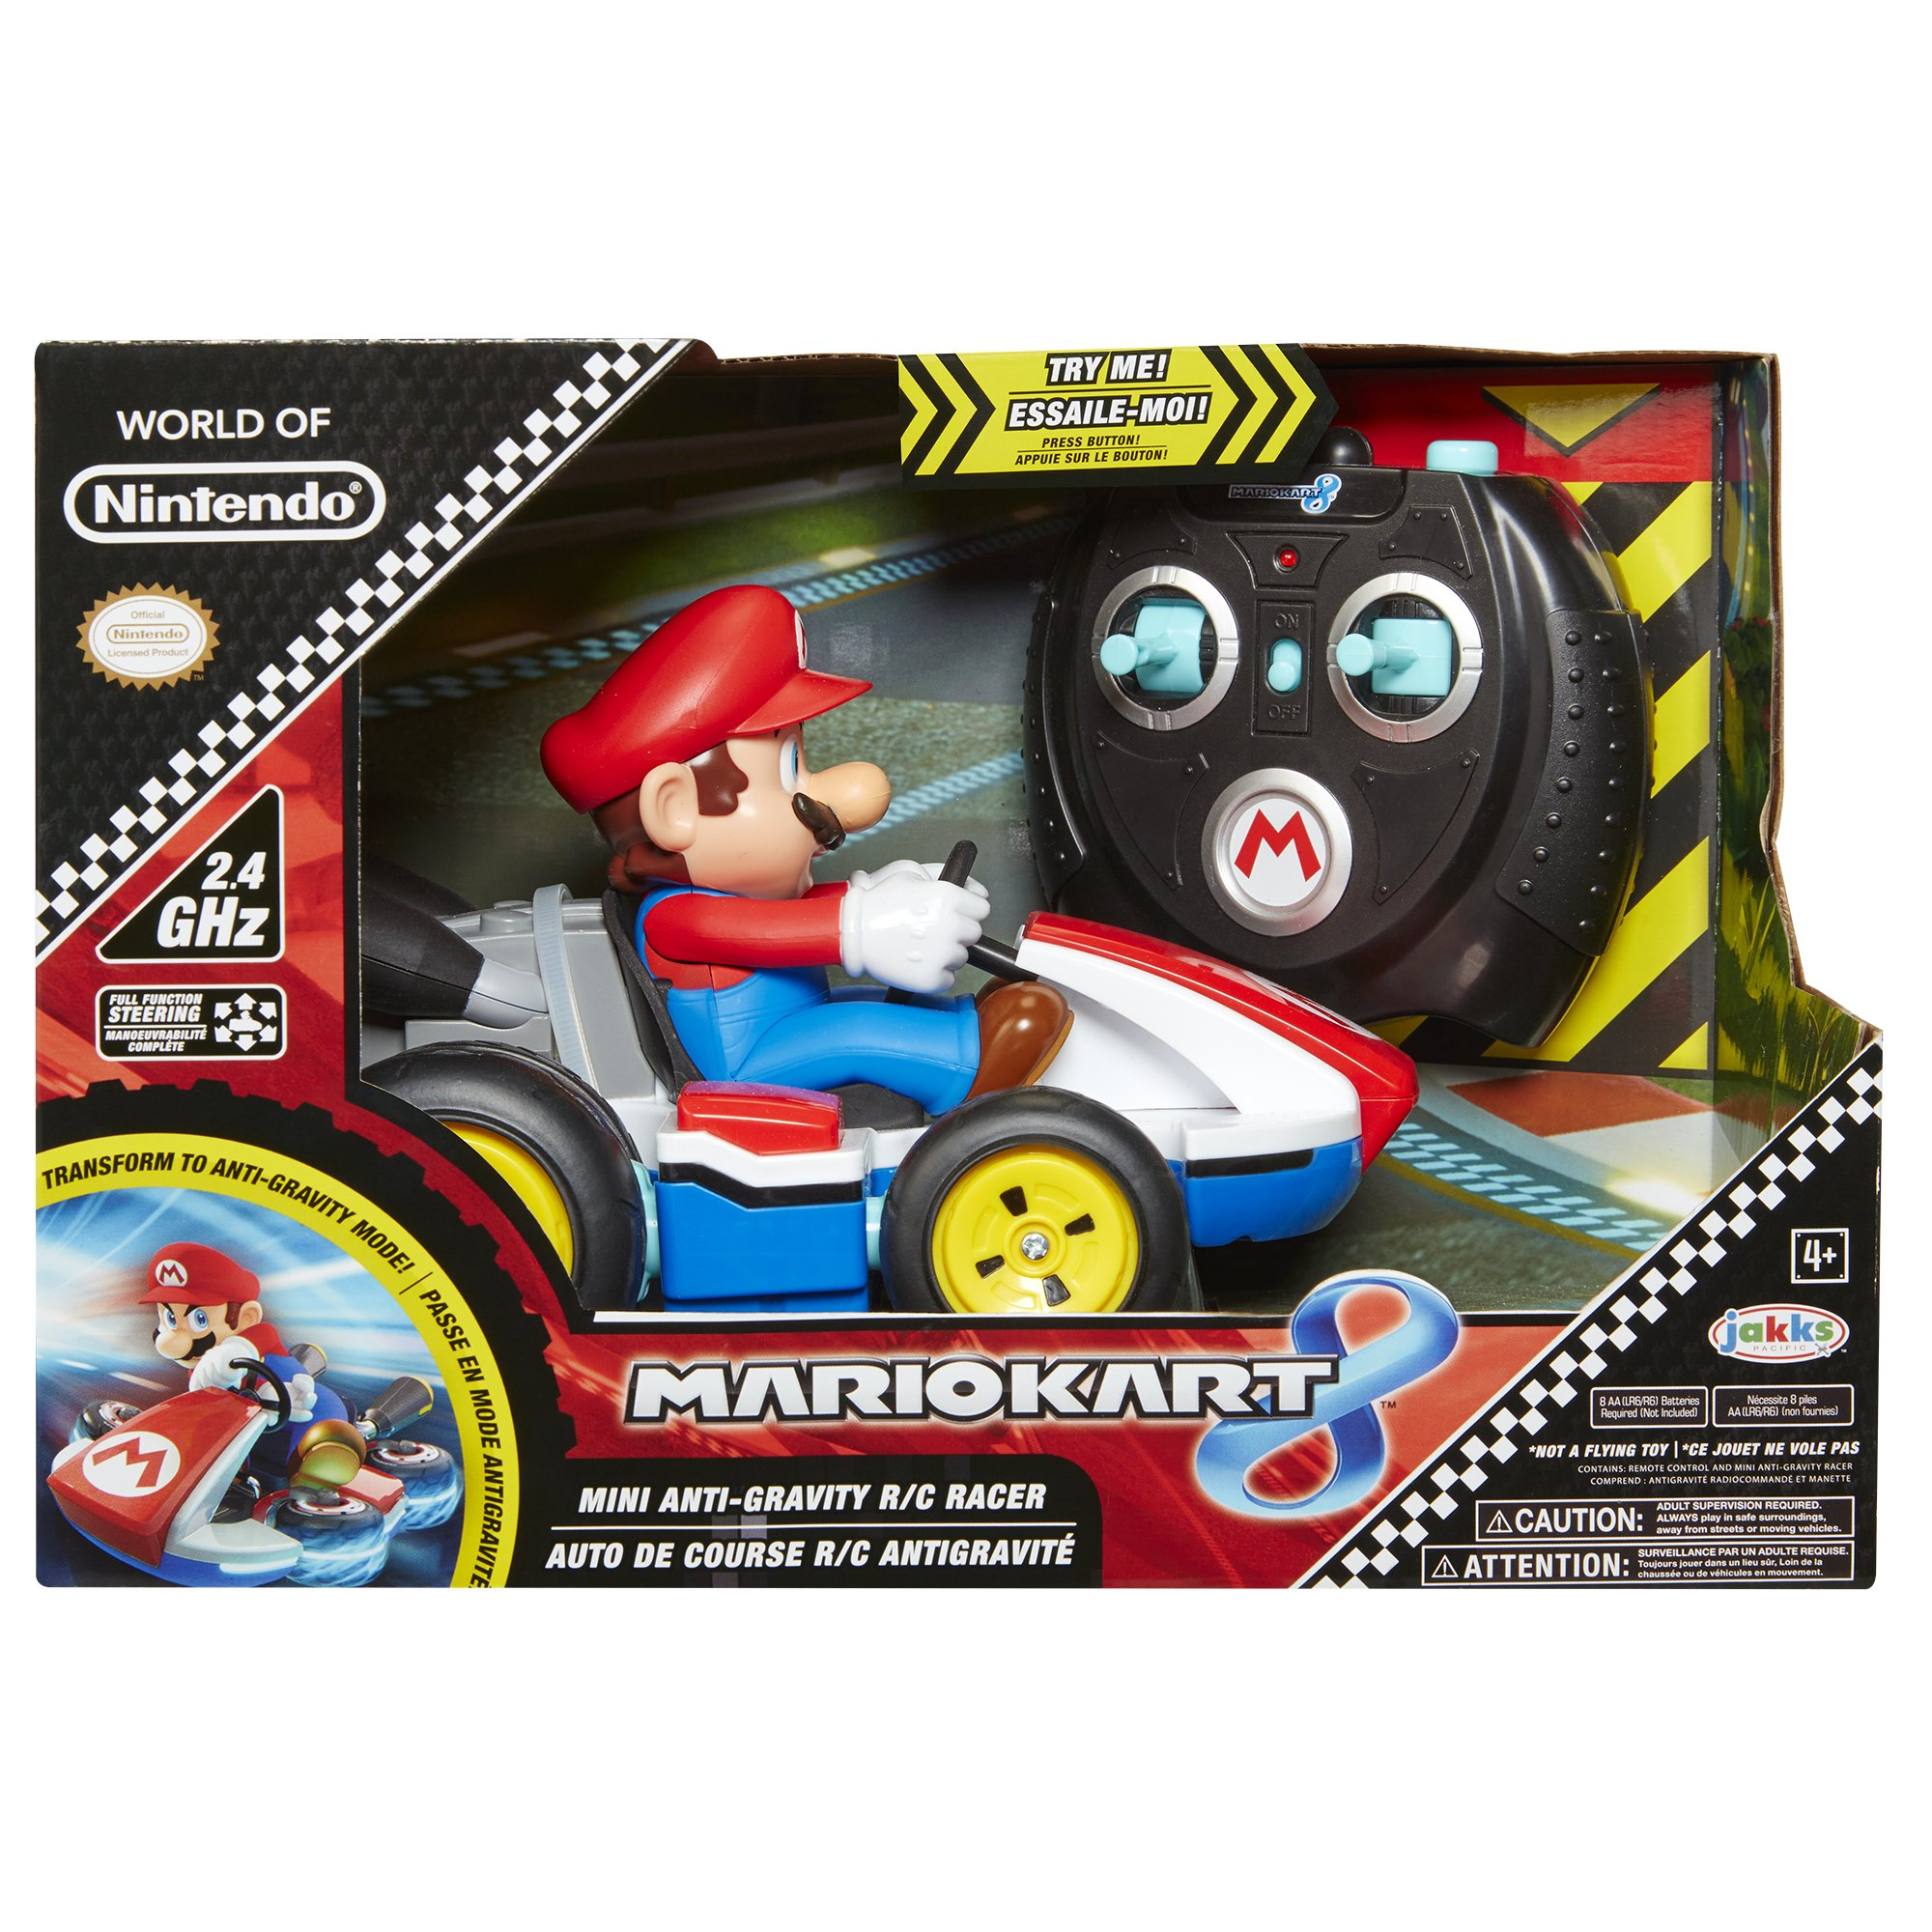 NINTENDO Super Mario Kart 8 Mario Anti-Gravity Mini RC Racer 2.4Ghz by Nintendo (Image #6)